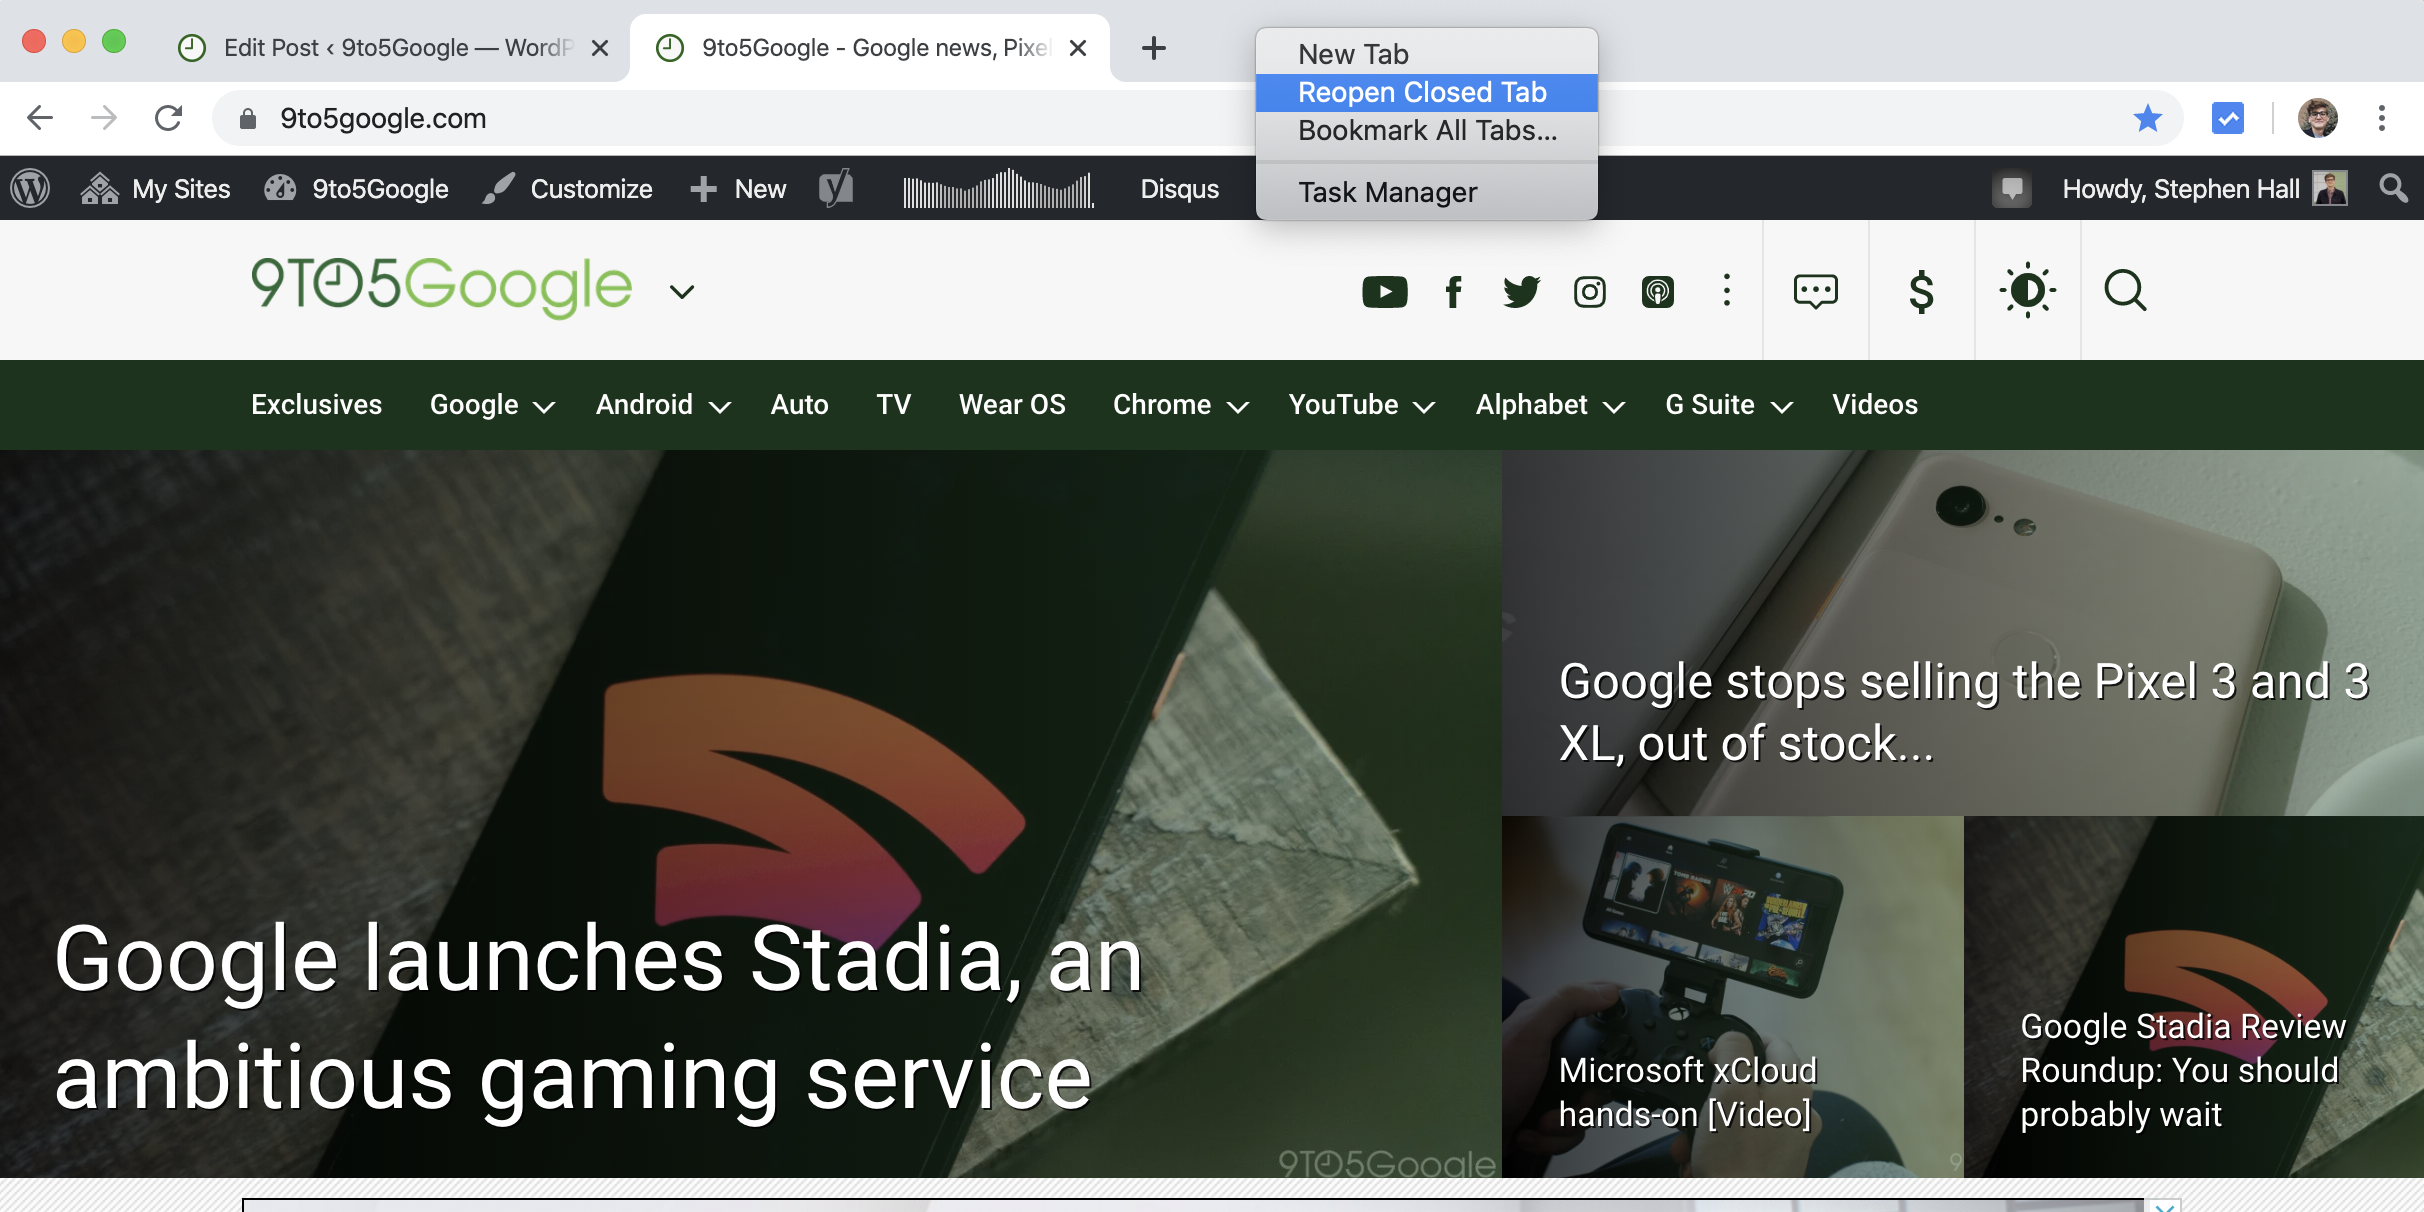 chrome reopen closed tab